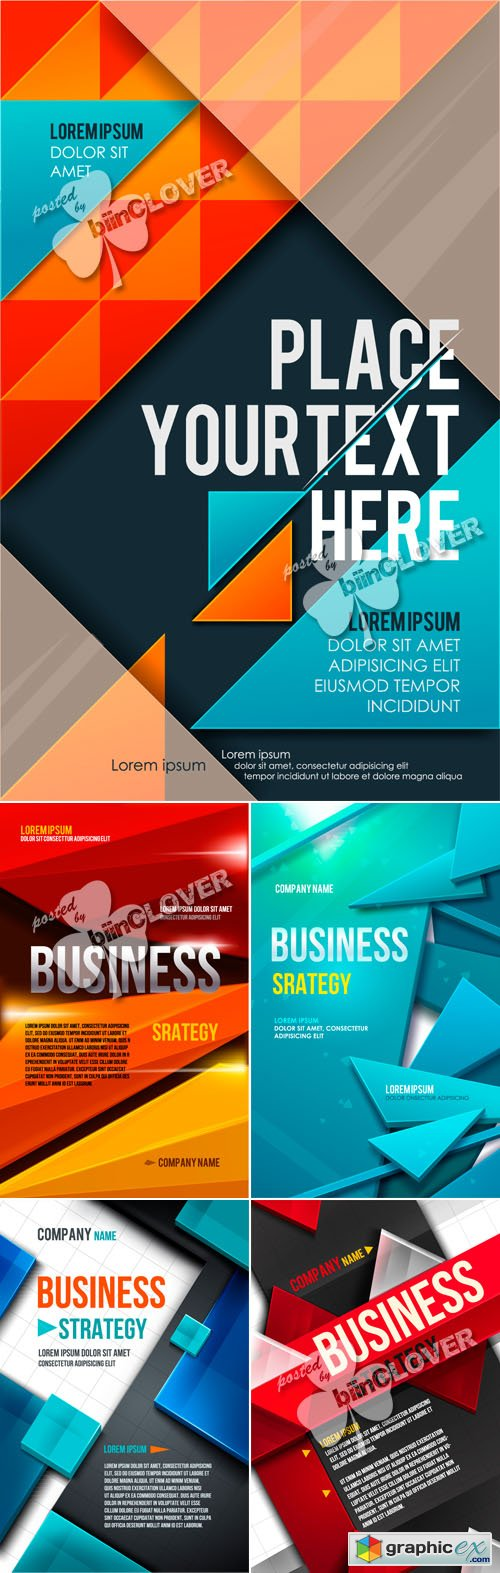 Vector Business square background 0461